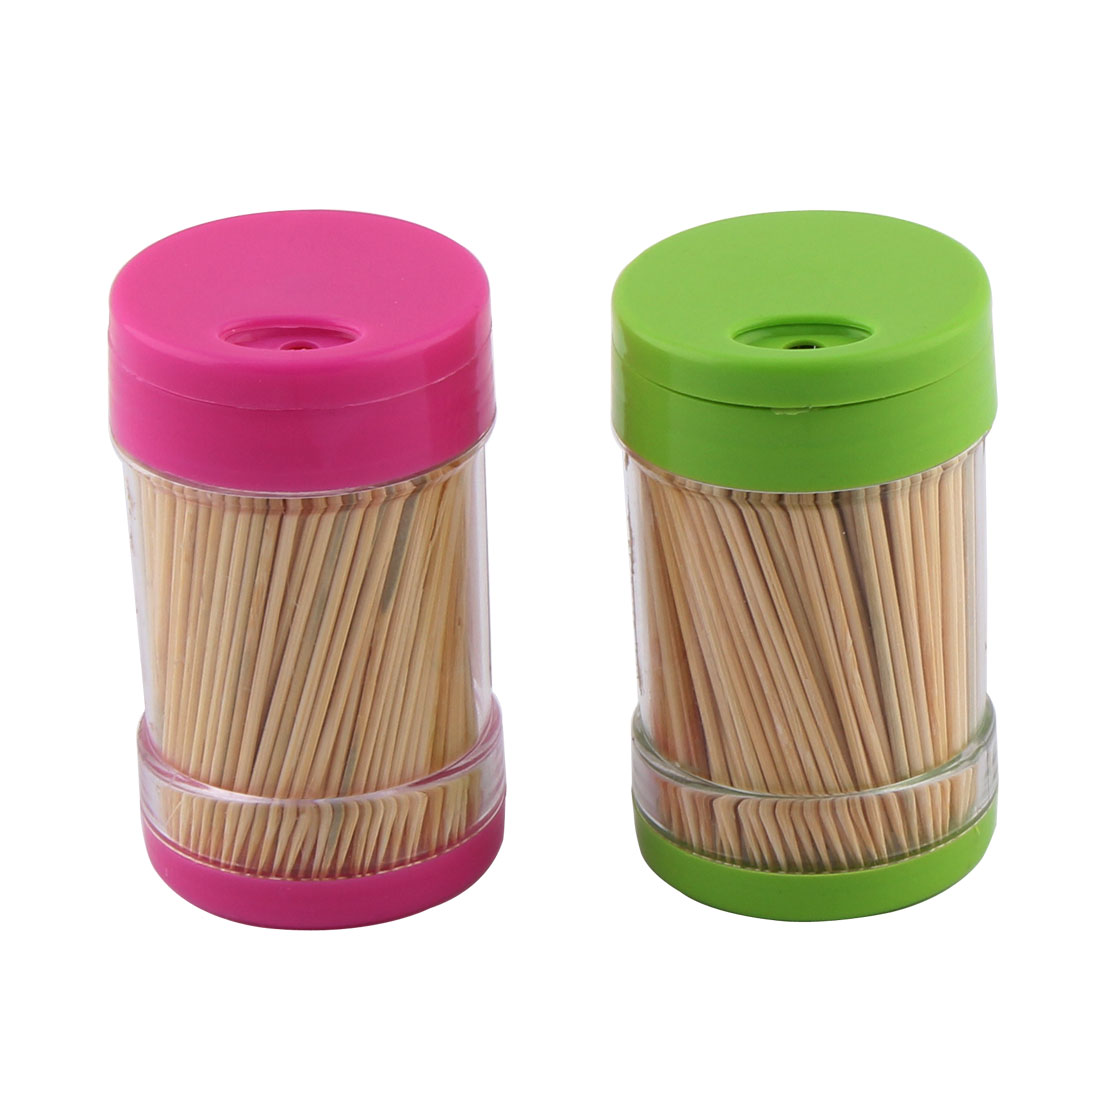 Home Restaurant Plastic Case Box Toothpick Holder Container 2pcs w Toothpicks